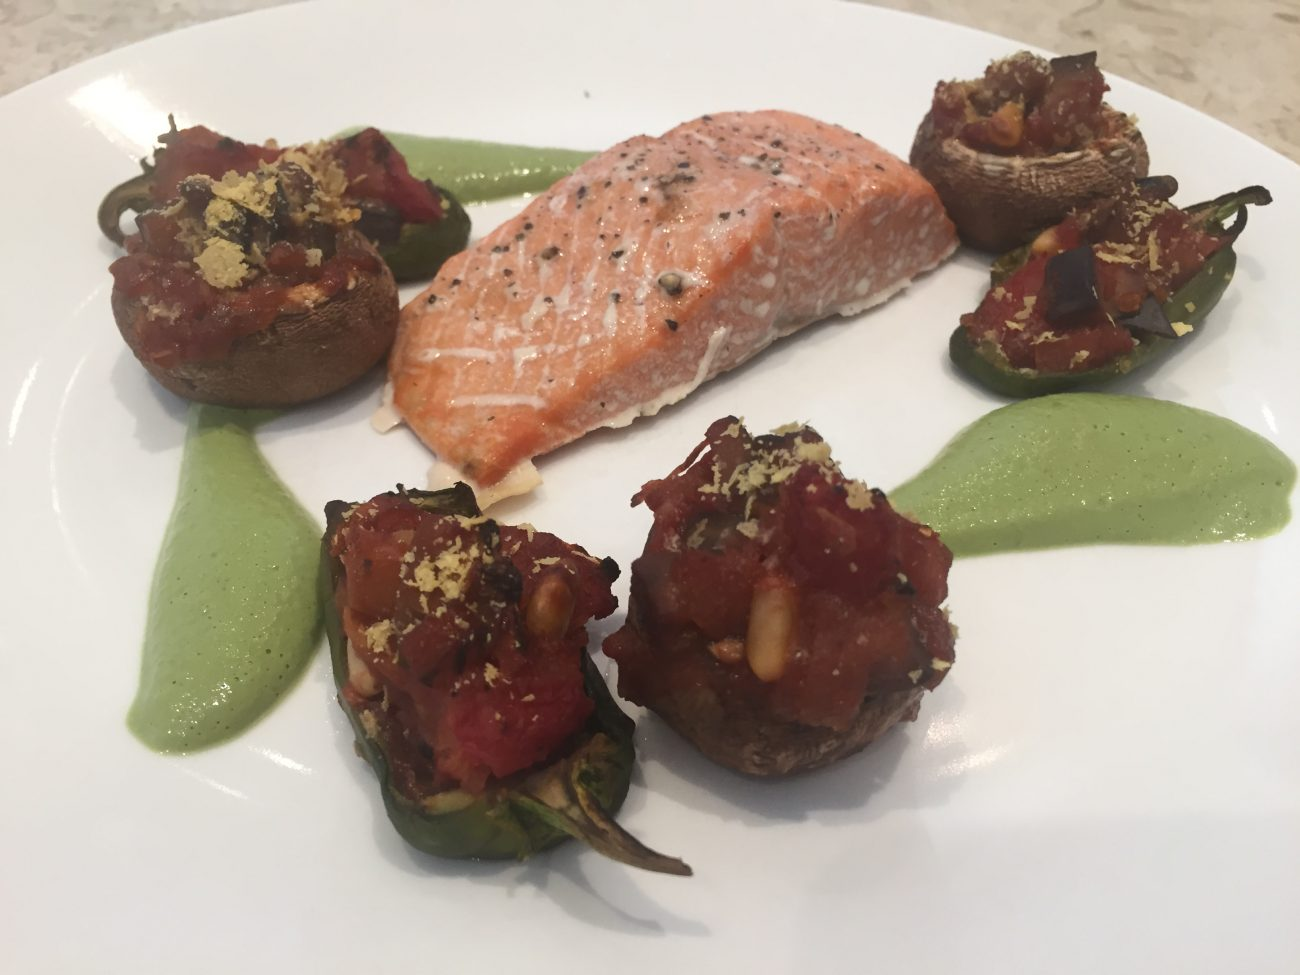 Salmon with stuffed mushrooms and peppers